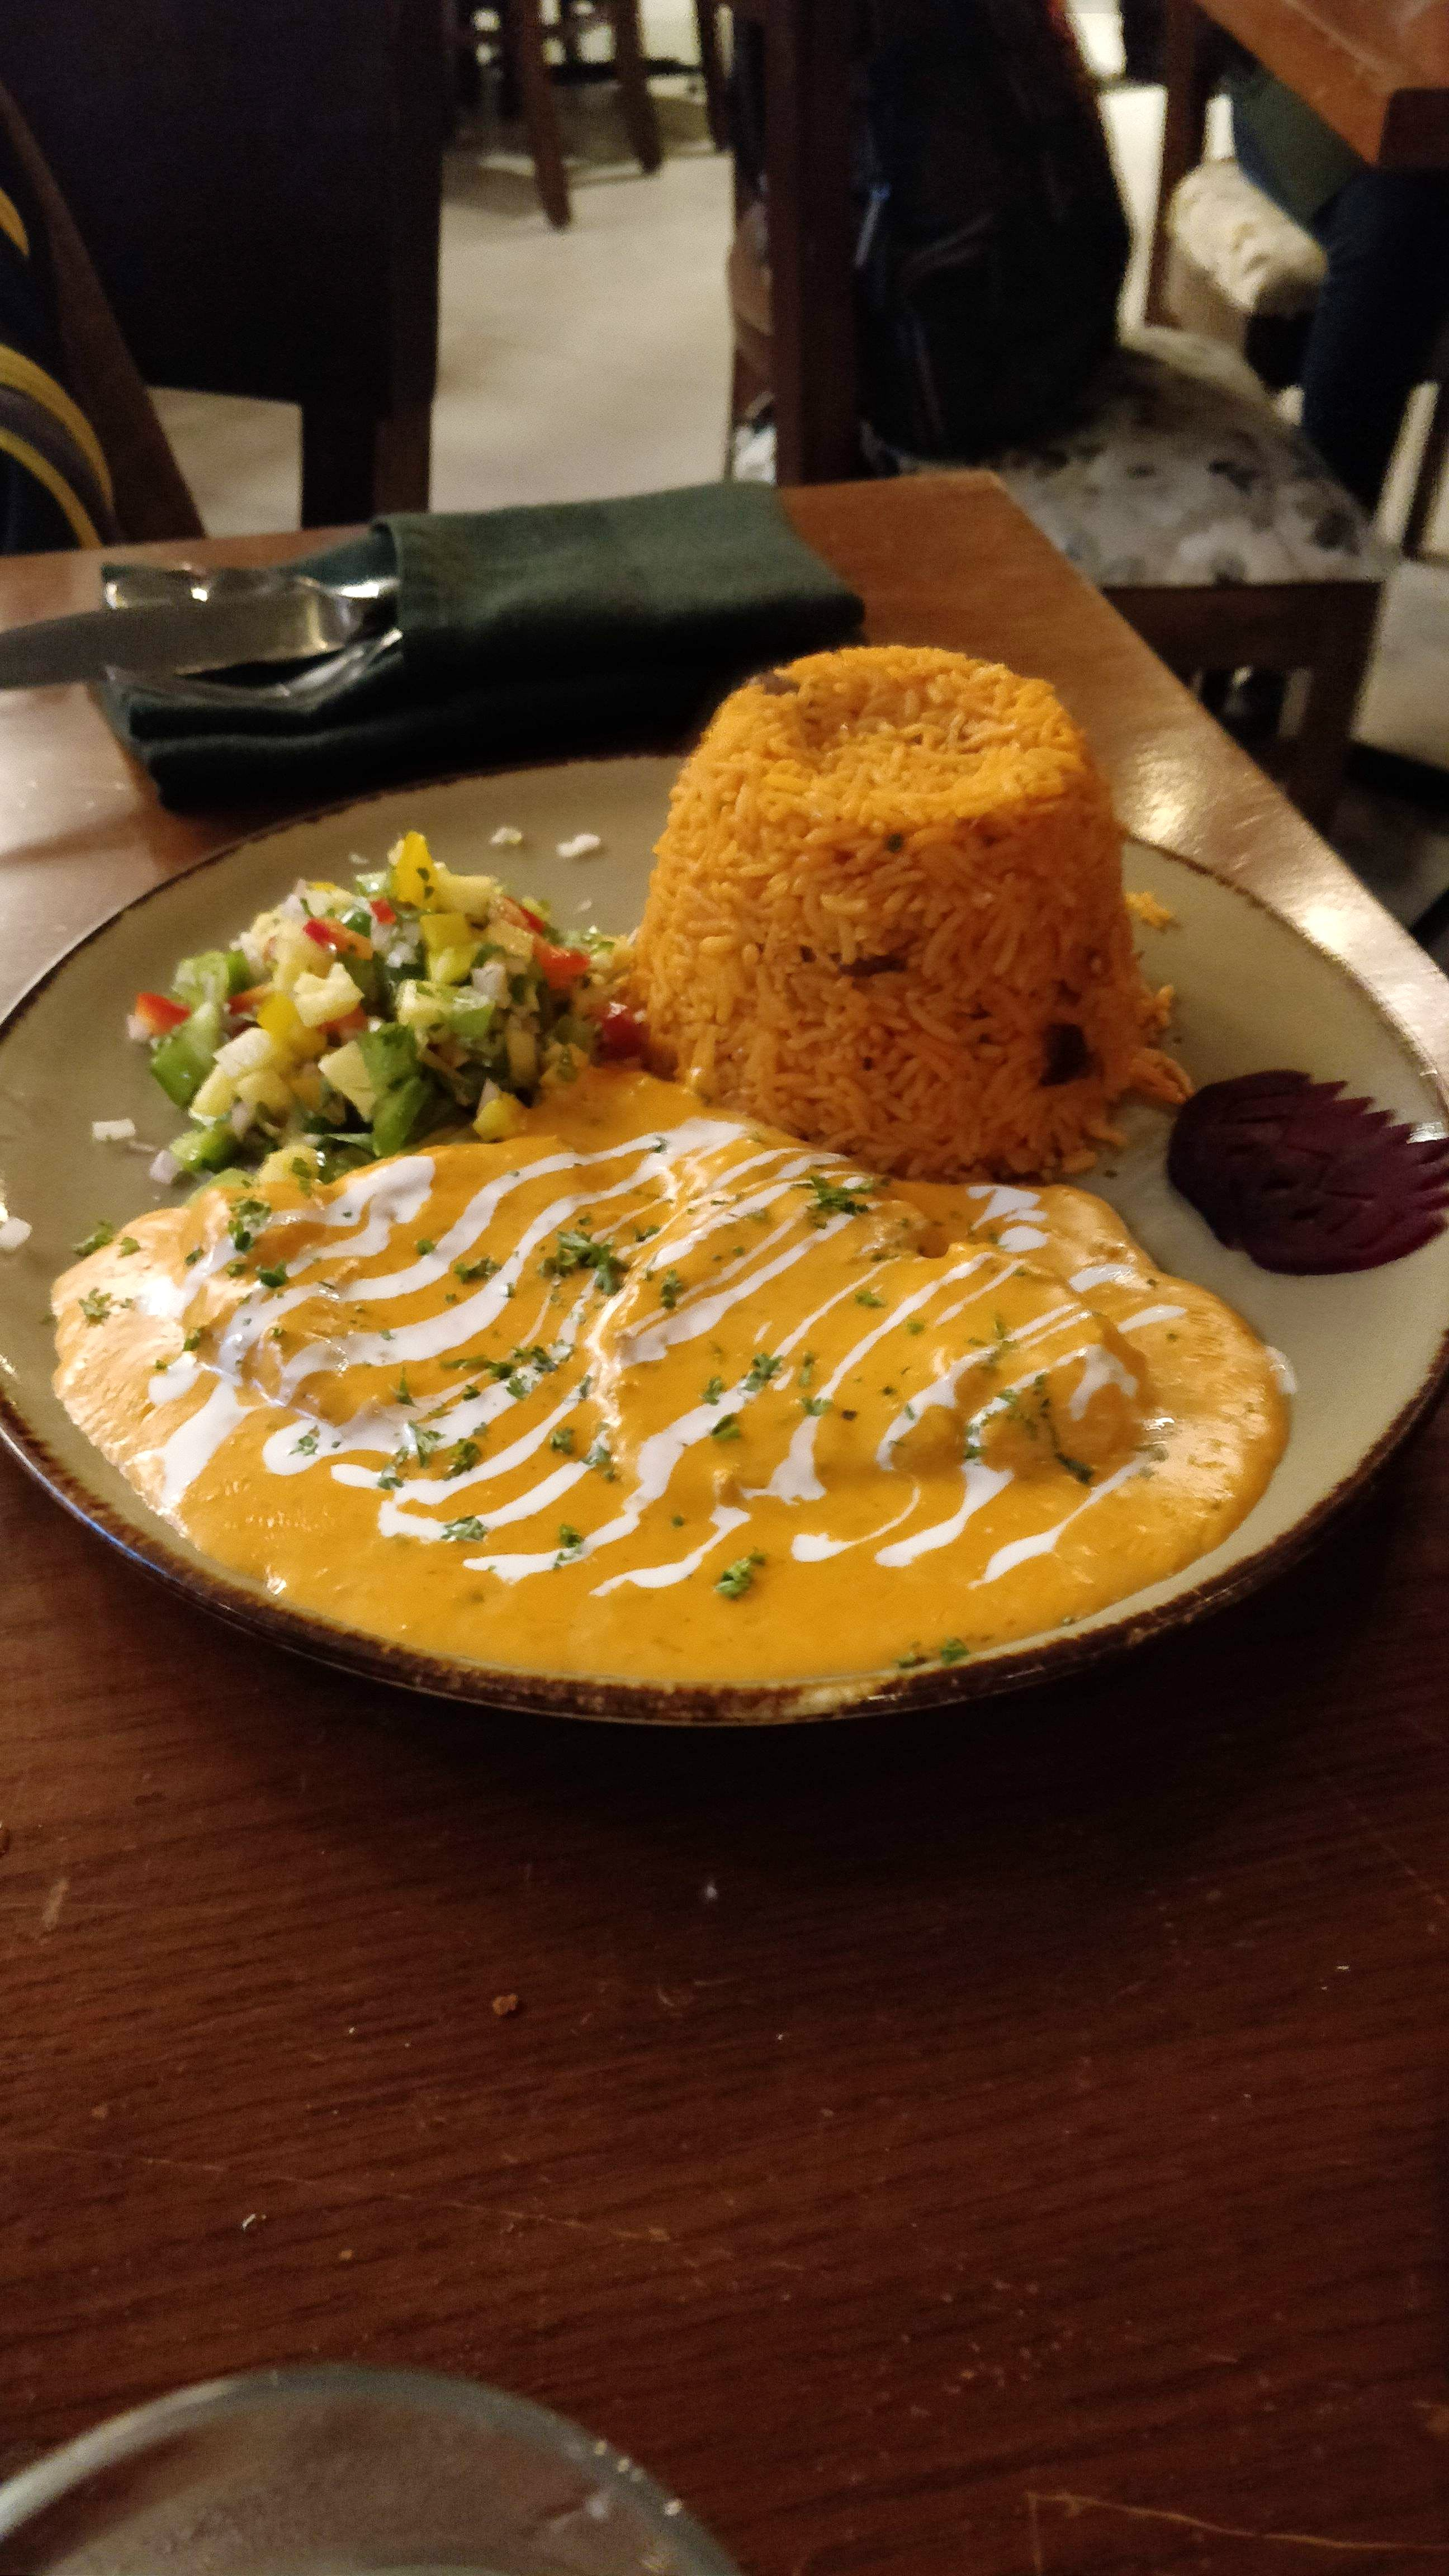 Craving For Home-Food? This Restaurant In Andheri Serves The Best Fusion Food